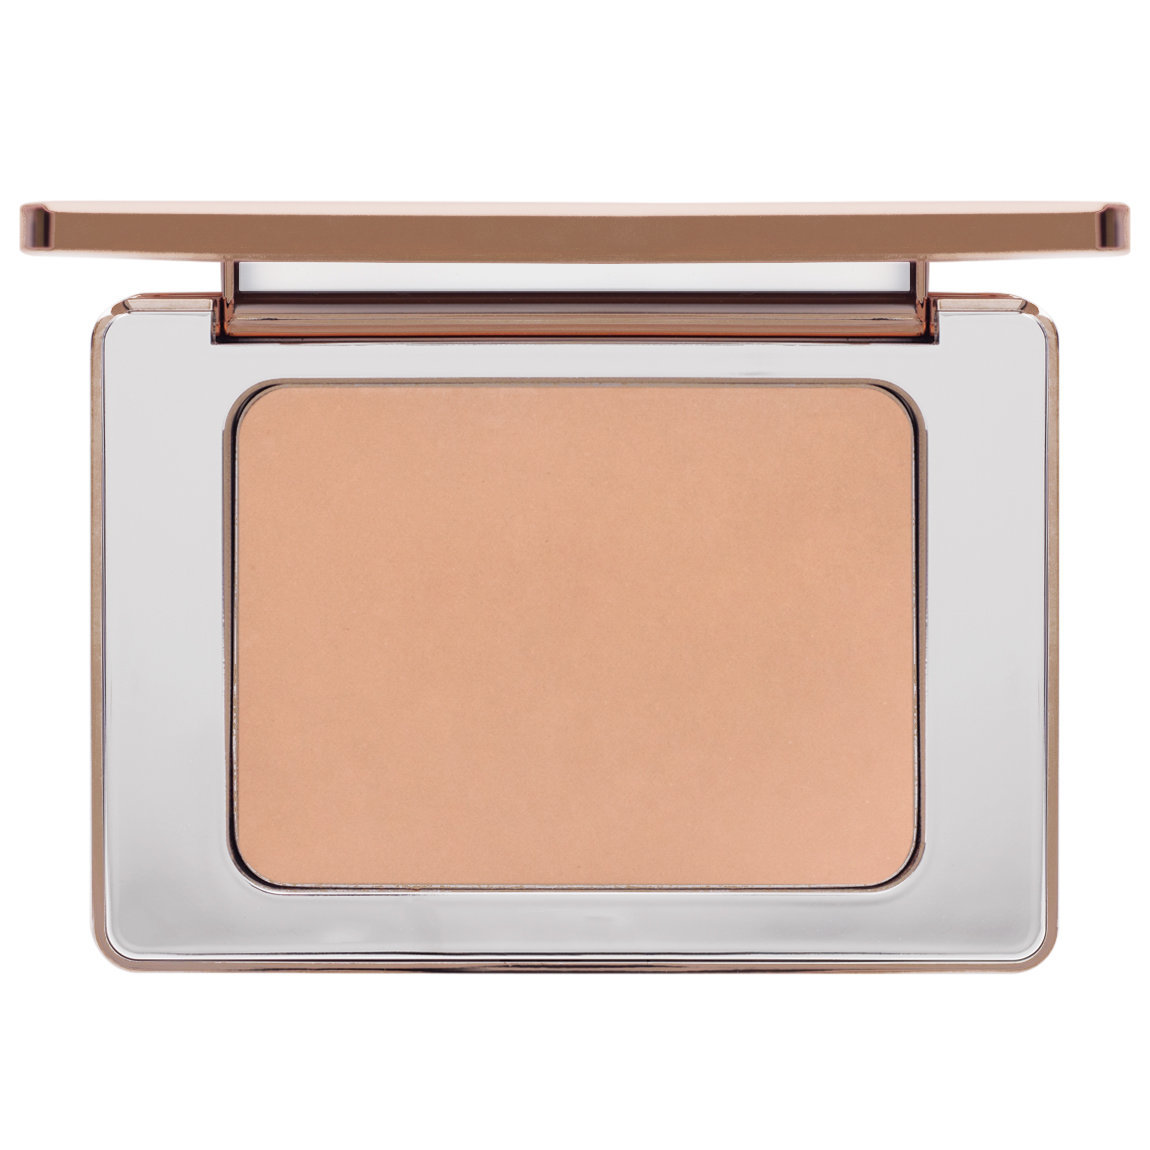 Natasha Denona Contour Sculpting Powder 01 Light product smear.